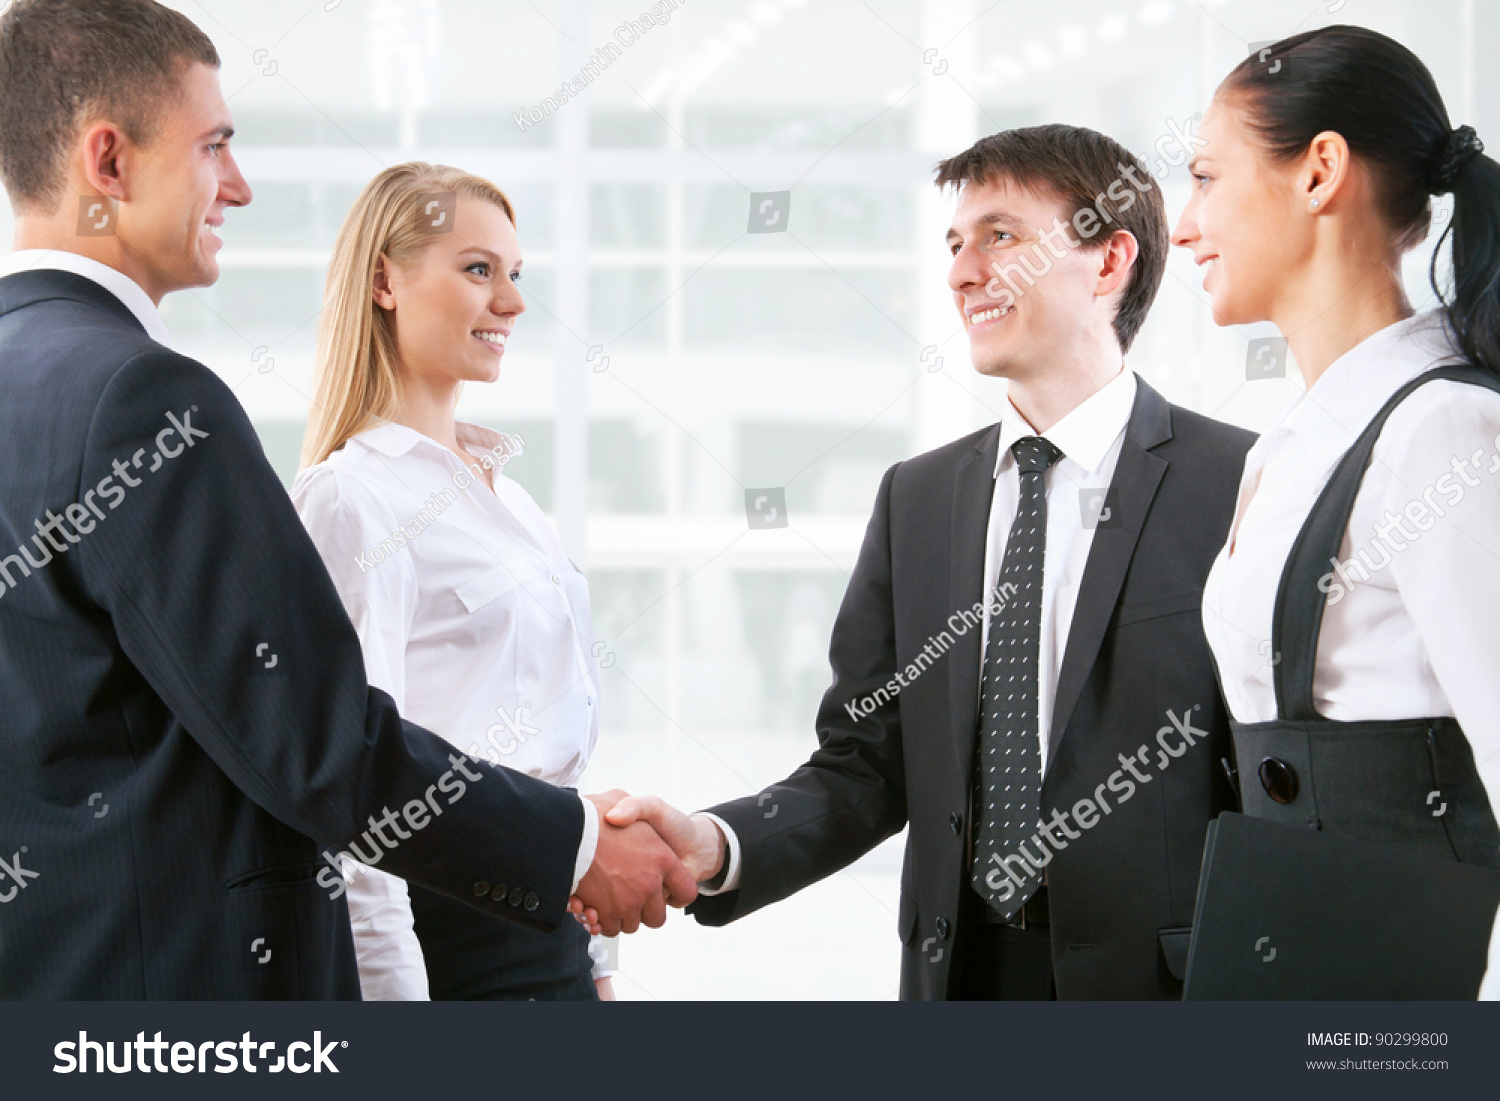 Business people handshake greeting deal at work photo free download - Handshake Business People Before The Meeting